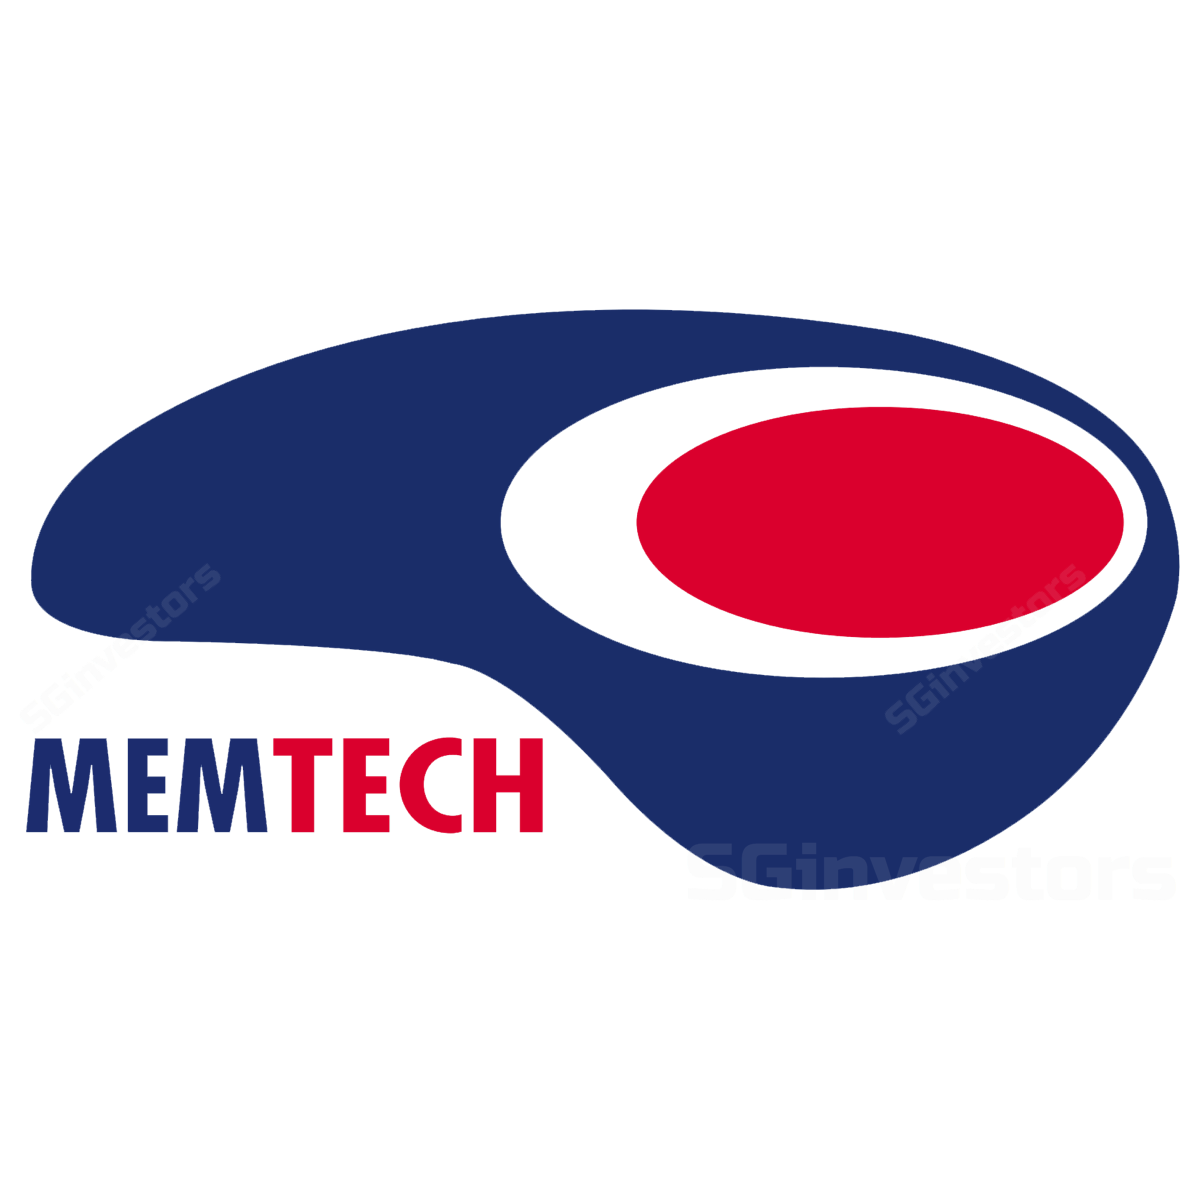 Memtech International - CGS-CIMB Research 2018-06-25: Blindsided By Trade Noises